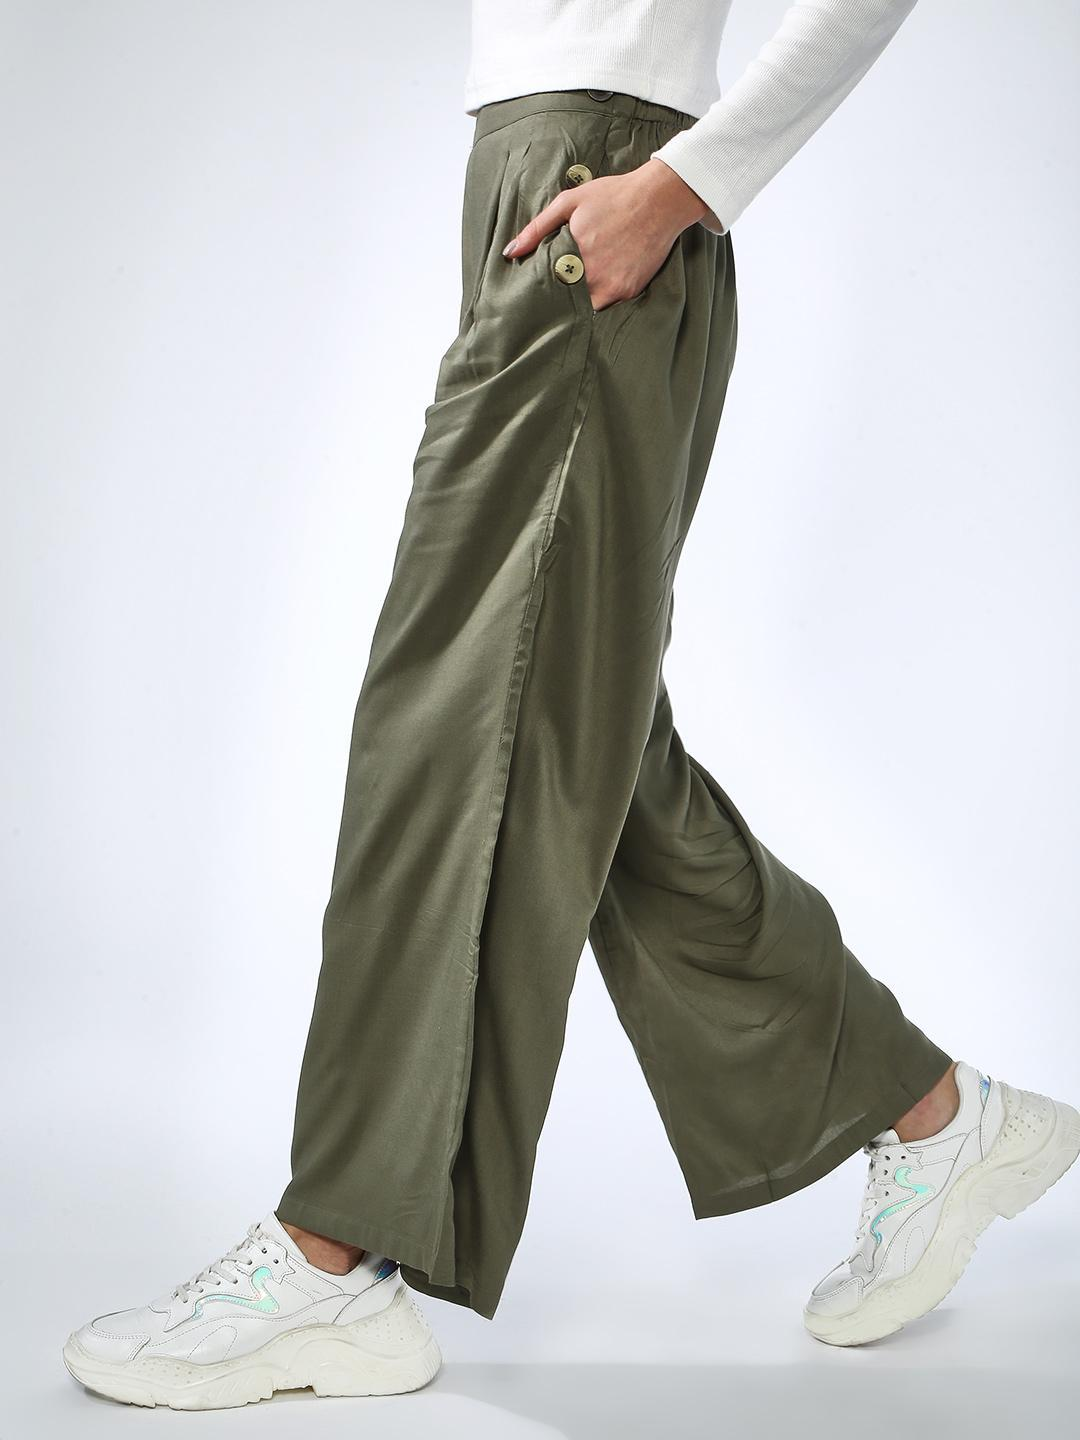 Oxolloxo Olive Button Pocket Regular Fit Pant 1